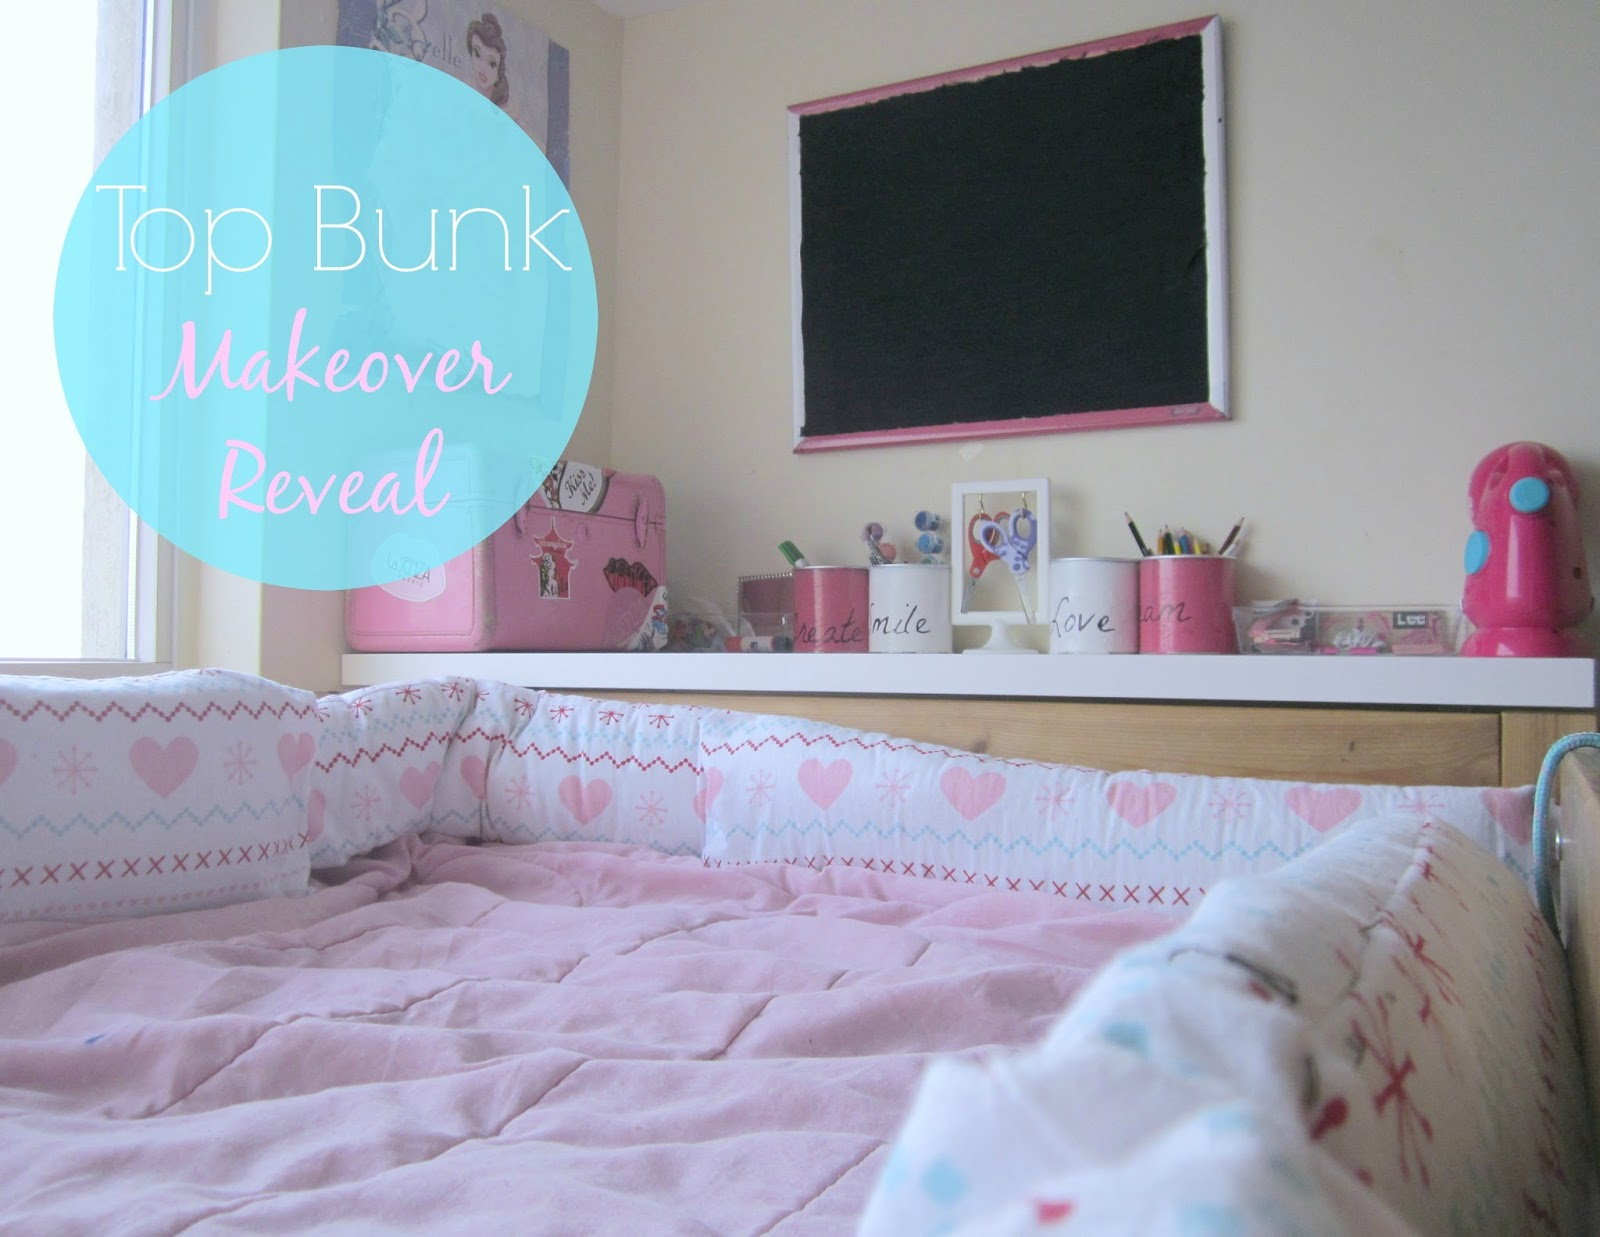 bunk bed makeover ideas